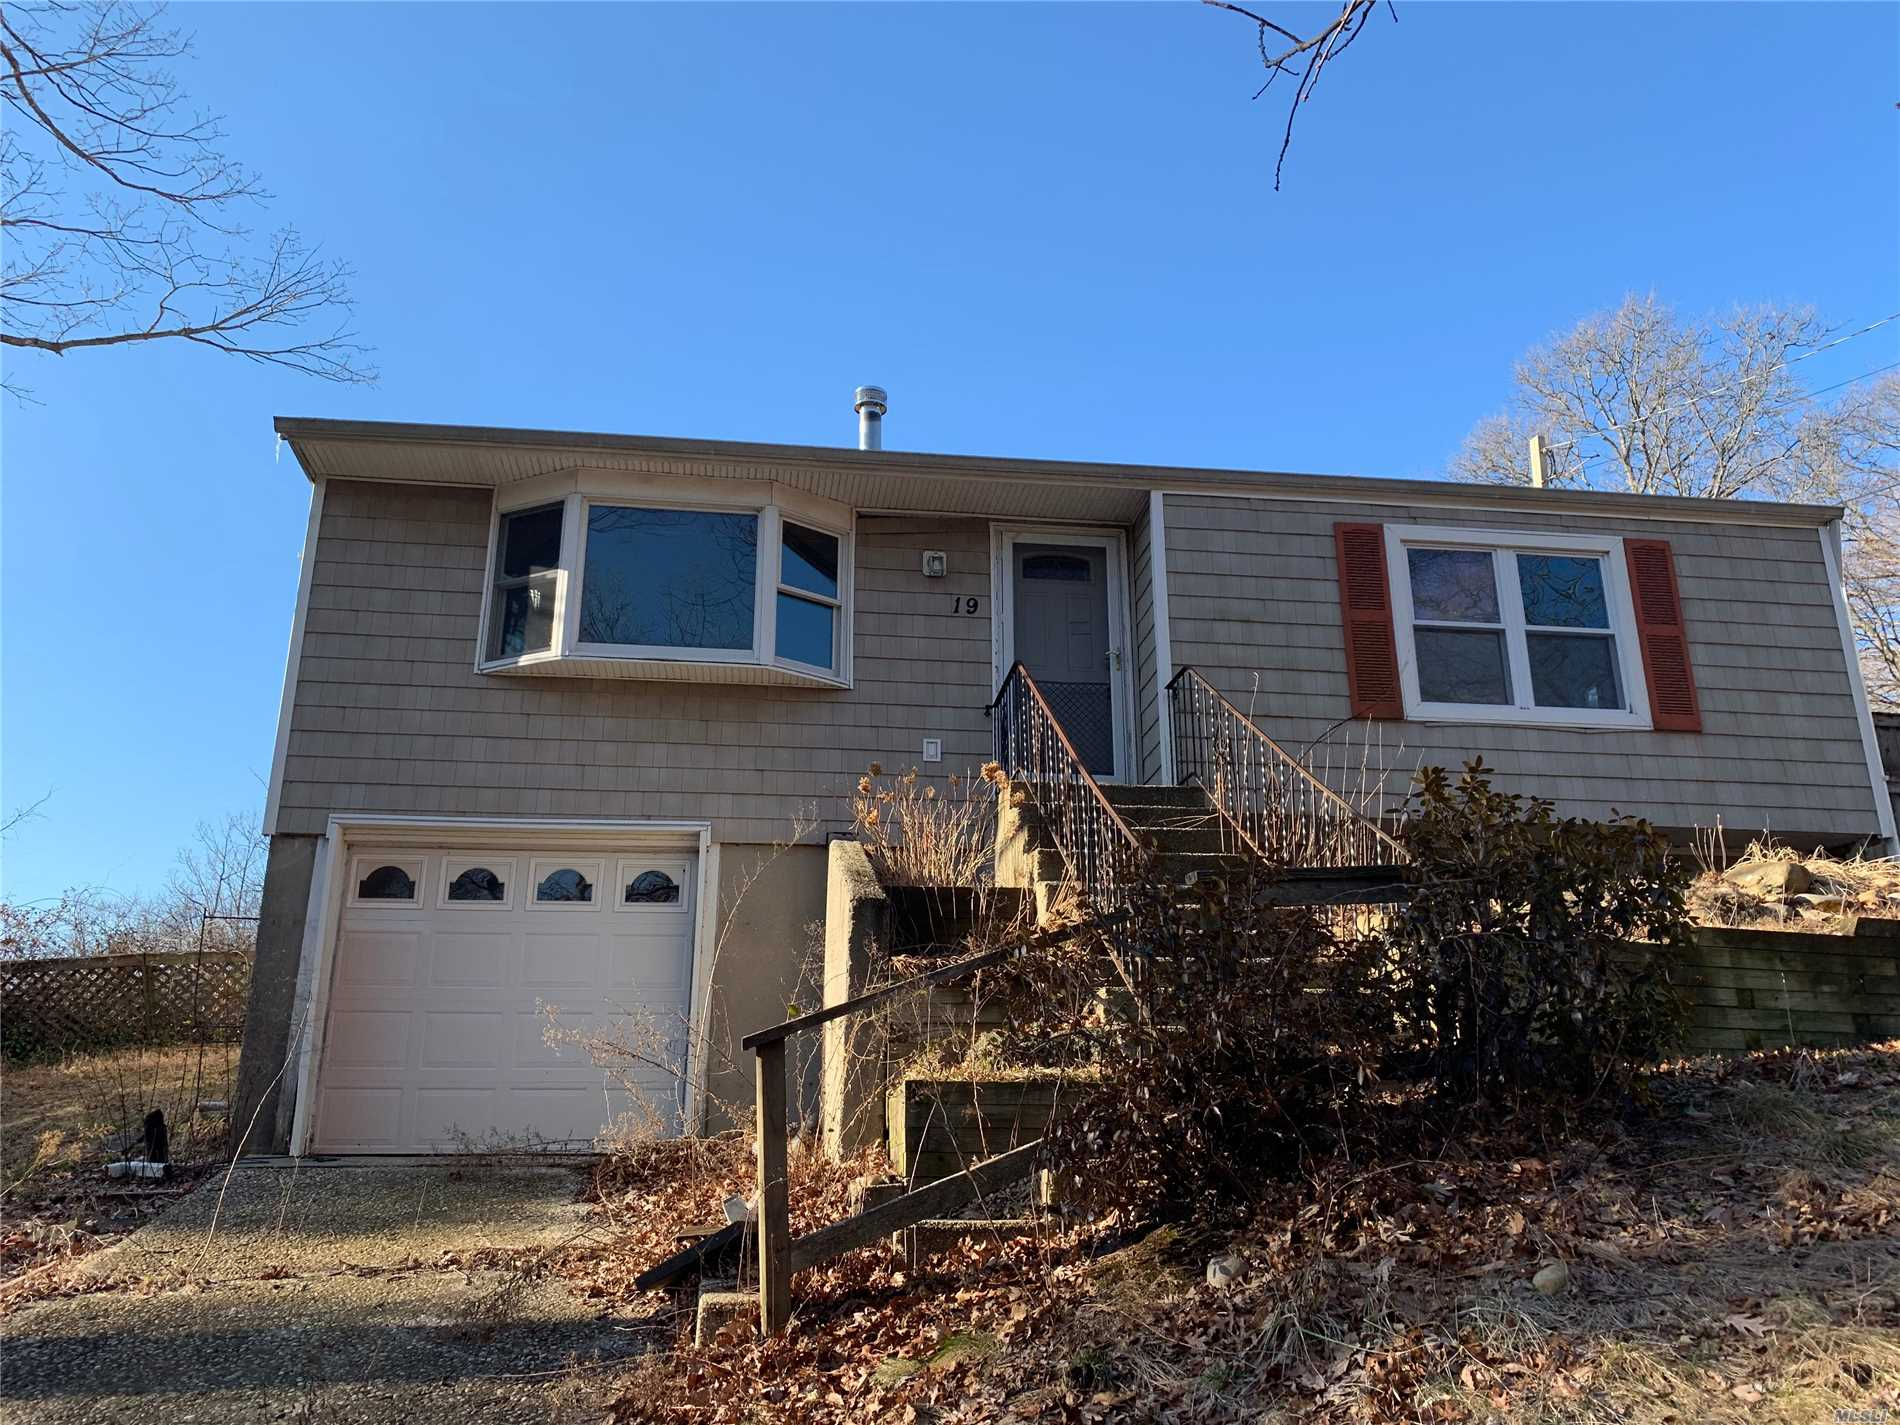 Lots Of Potential In This 3 Bedroom, 1 Bathroom Ranch Home With Full Basement And One Car Garage. Large Flat Backyard. Wood Floors Throughout. Wood Burning Stove In Living Room. Upgraded Burner And Electric Systems. Basement Can Be Easily Finished For Additional Living Space.